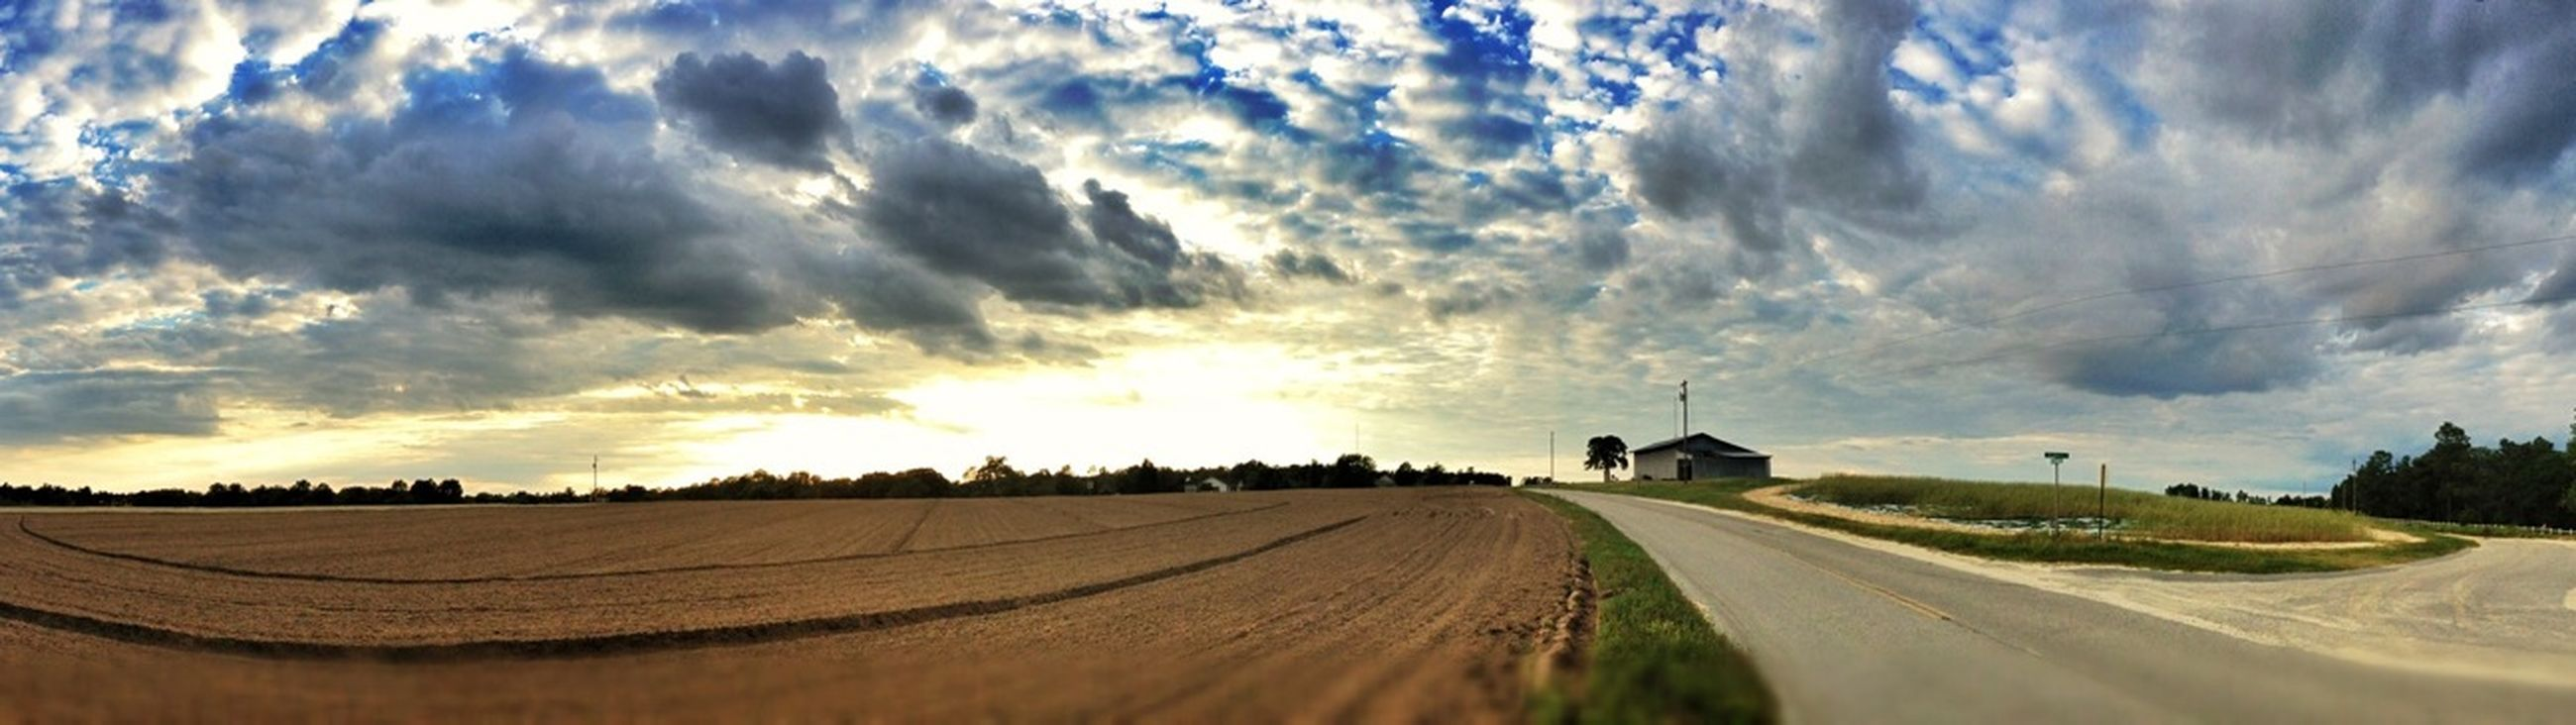 sky, cloud - sky, landscape, rural scene, the way forward, cloud, tranquil scene, cloudy, field, tranquility, agriculture, scenics, nature, sunset, beauty in nature, sunlight, farm, diminishing perspective, vanishing point, dirt road